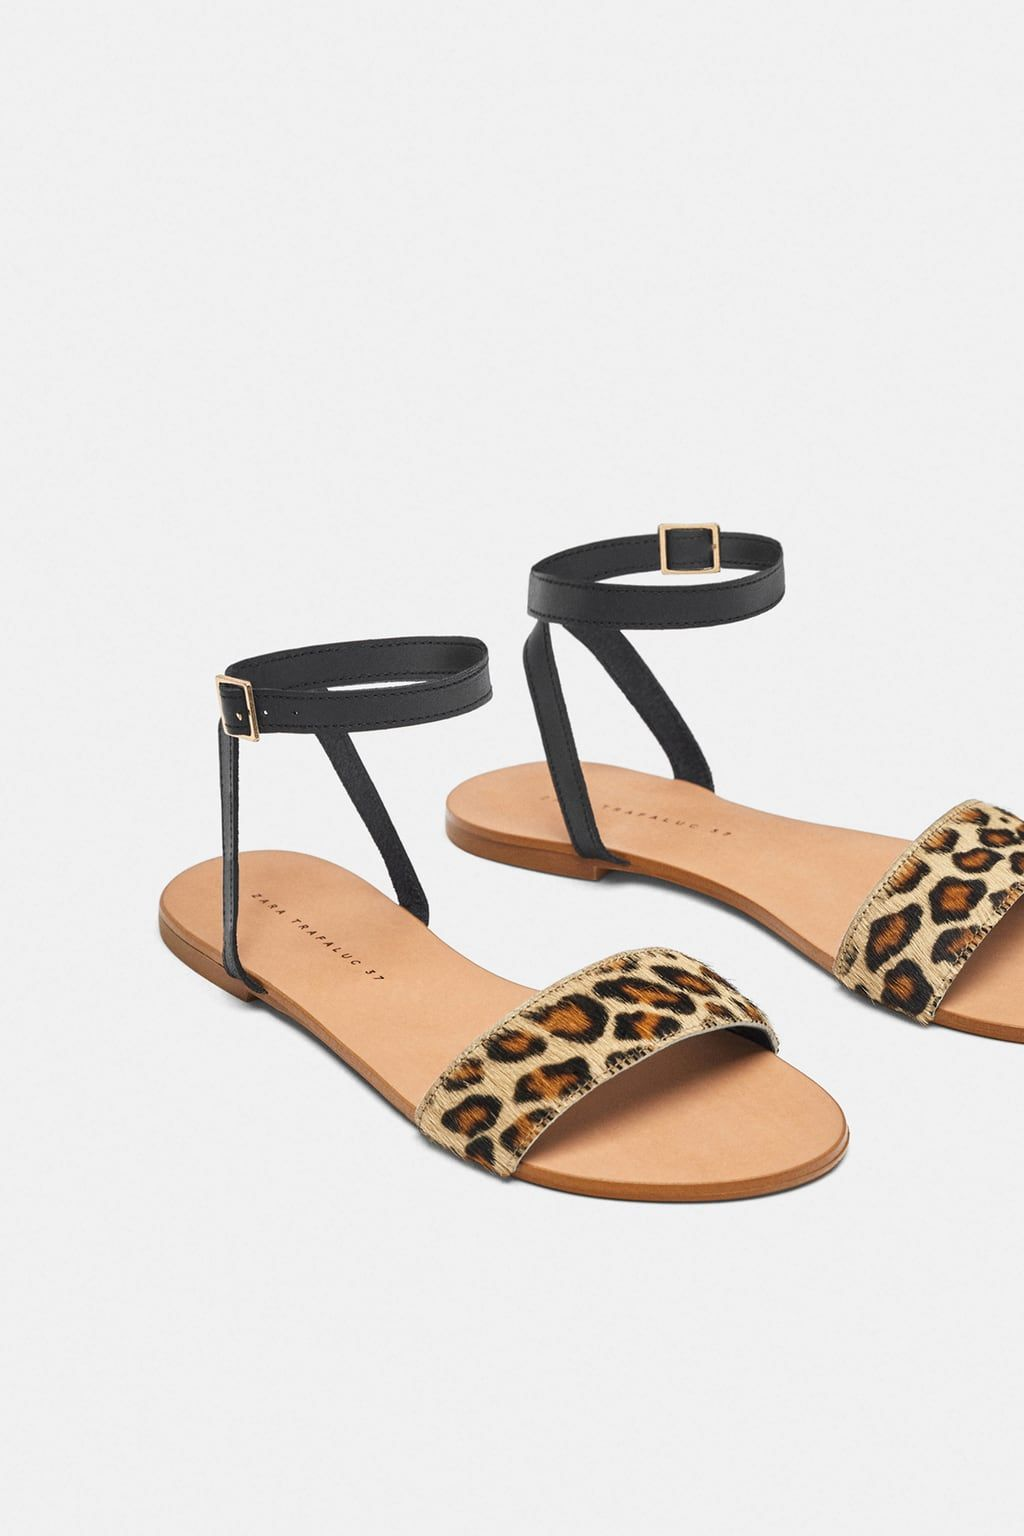 206f7bbd340 Image 1 of FLAT LEATHER SANDALS WITH LEOPARD PRINT STRAP from Zara